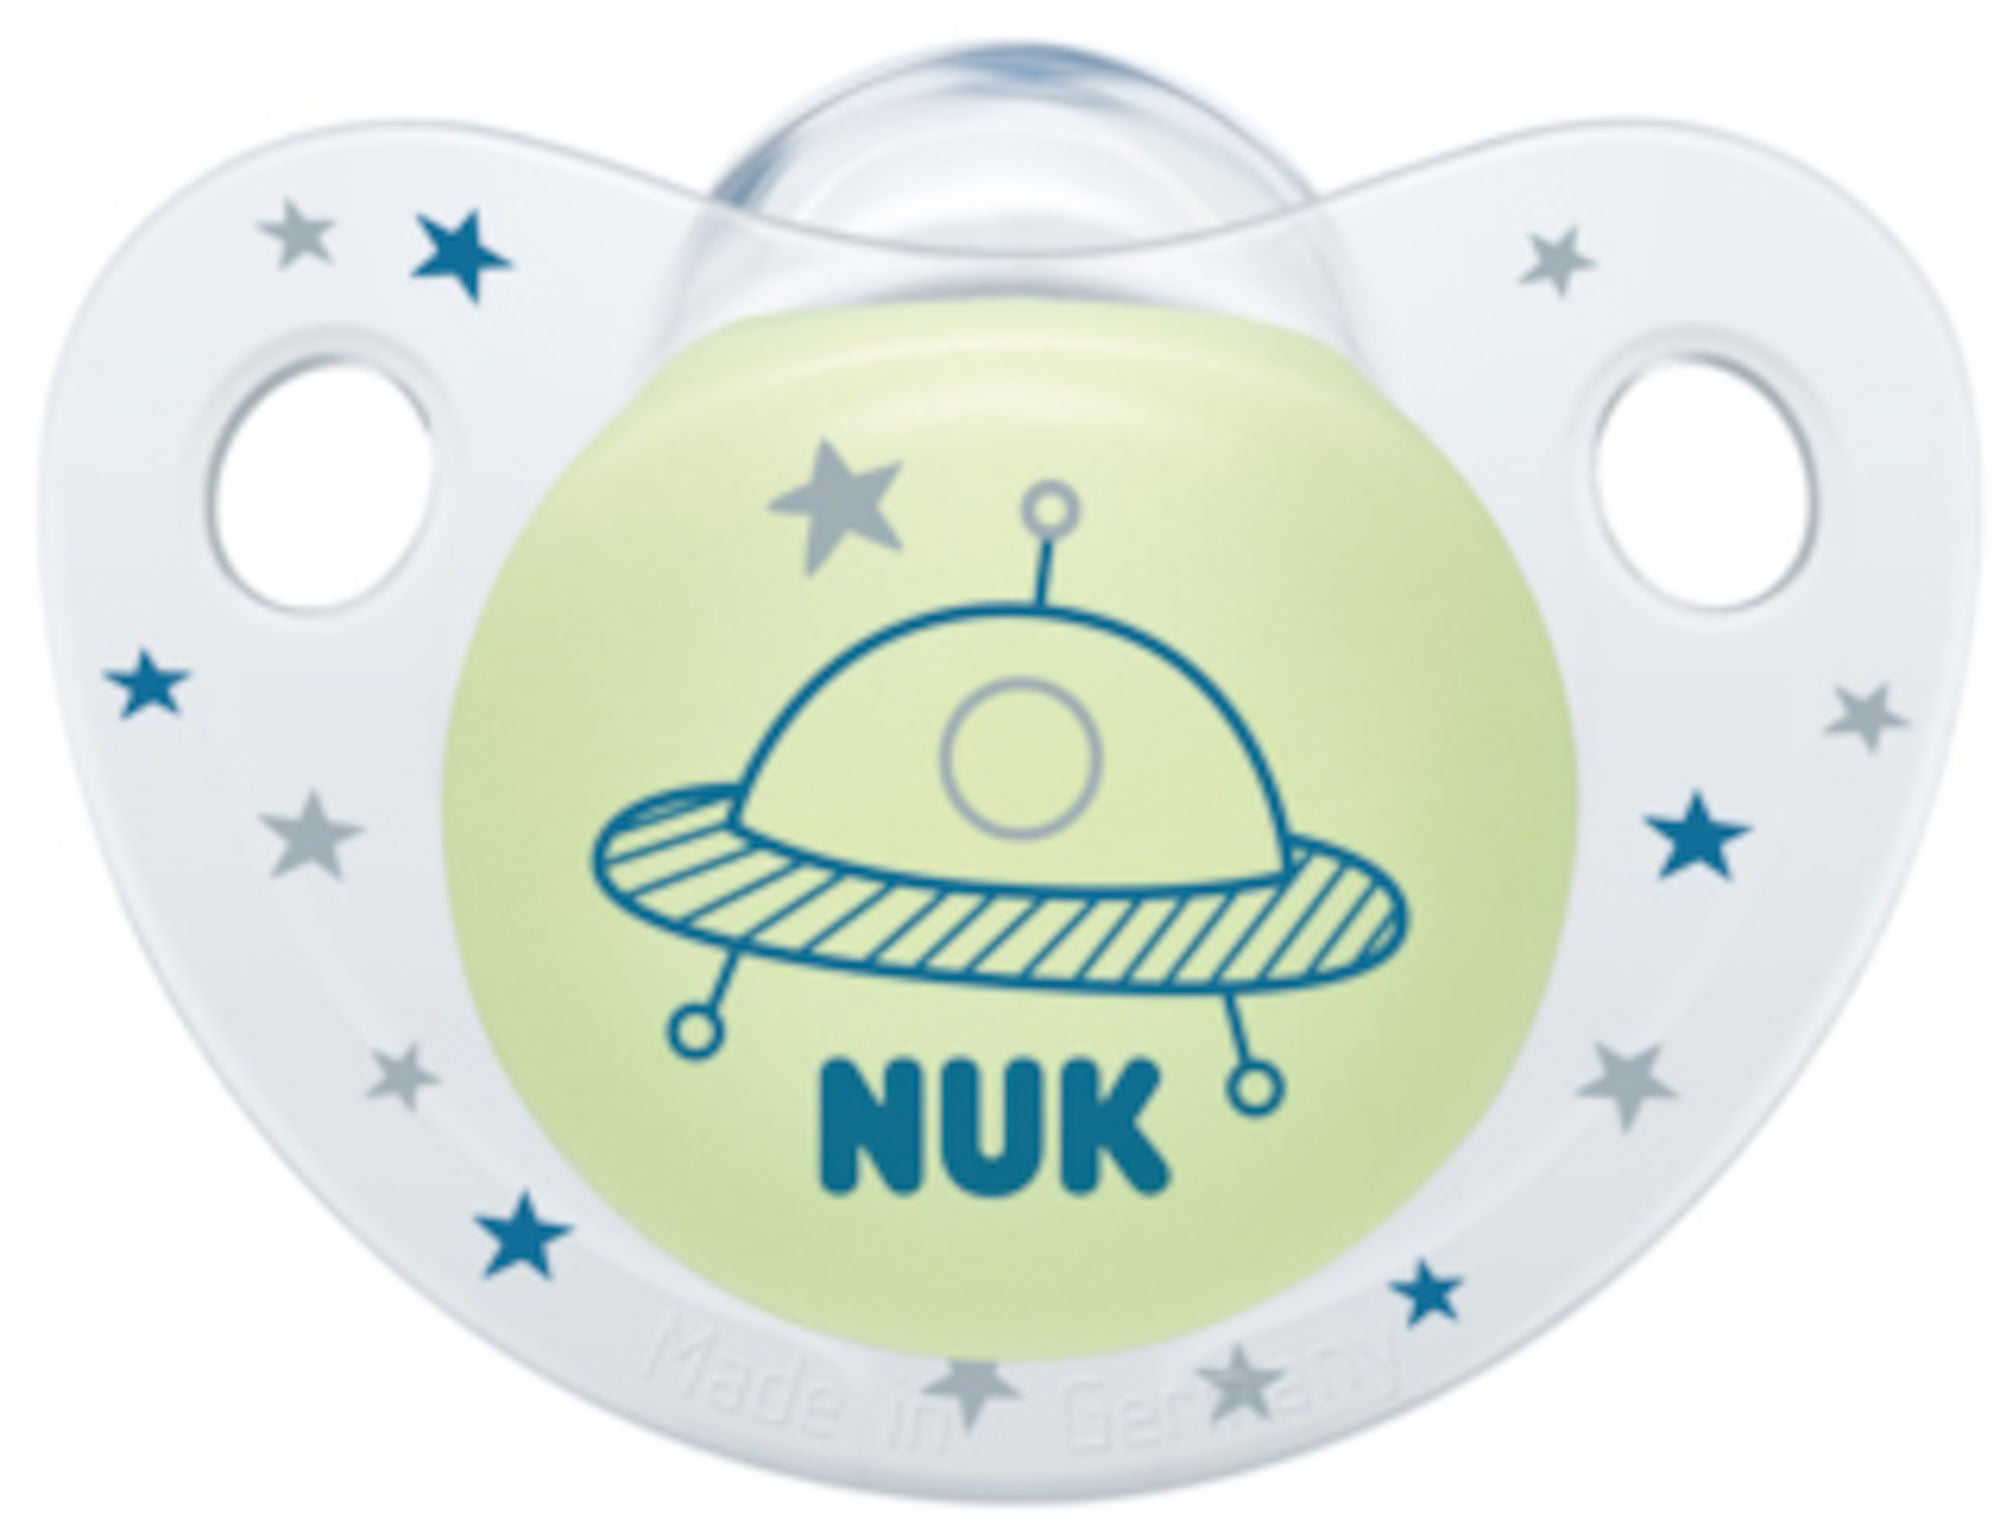 NUK Trendline Night & Day 0-6 mnd Smokk 2-pack, Blå/Hvit